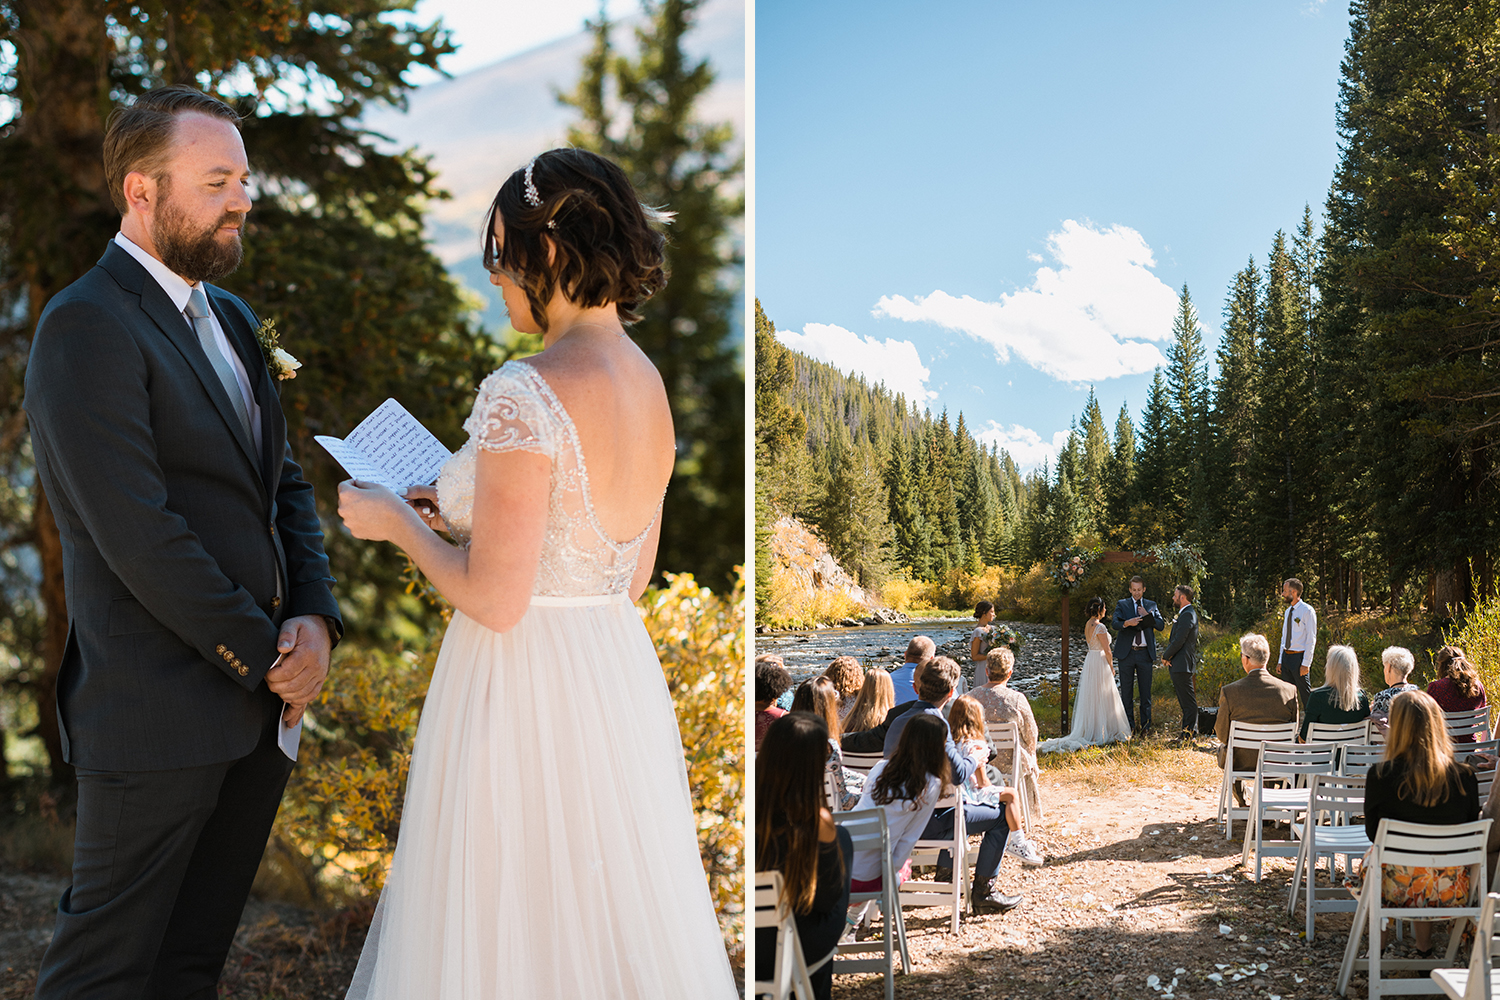 bride and groom for adventure wedding ceremony in Breckenridge, Colorado